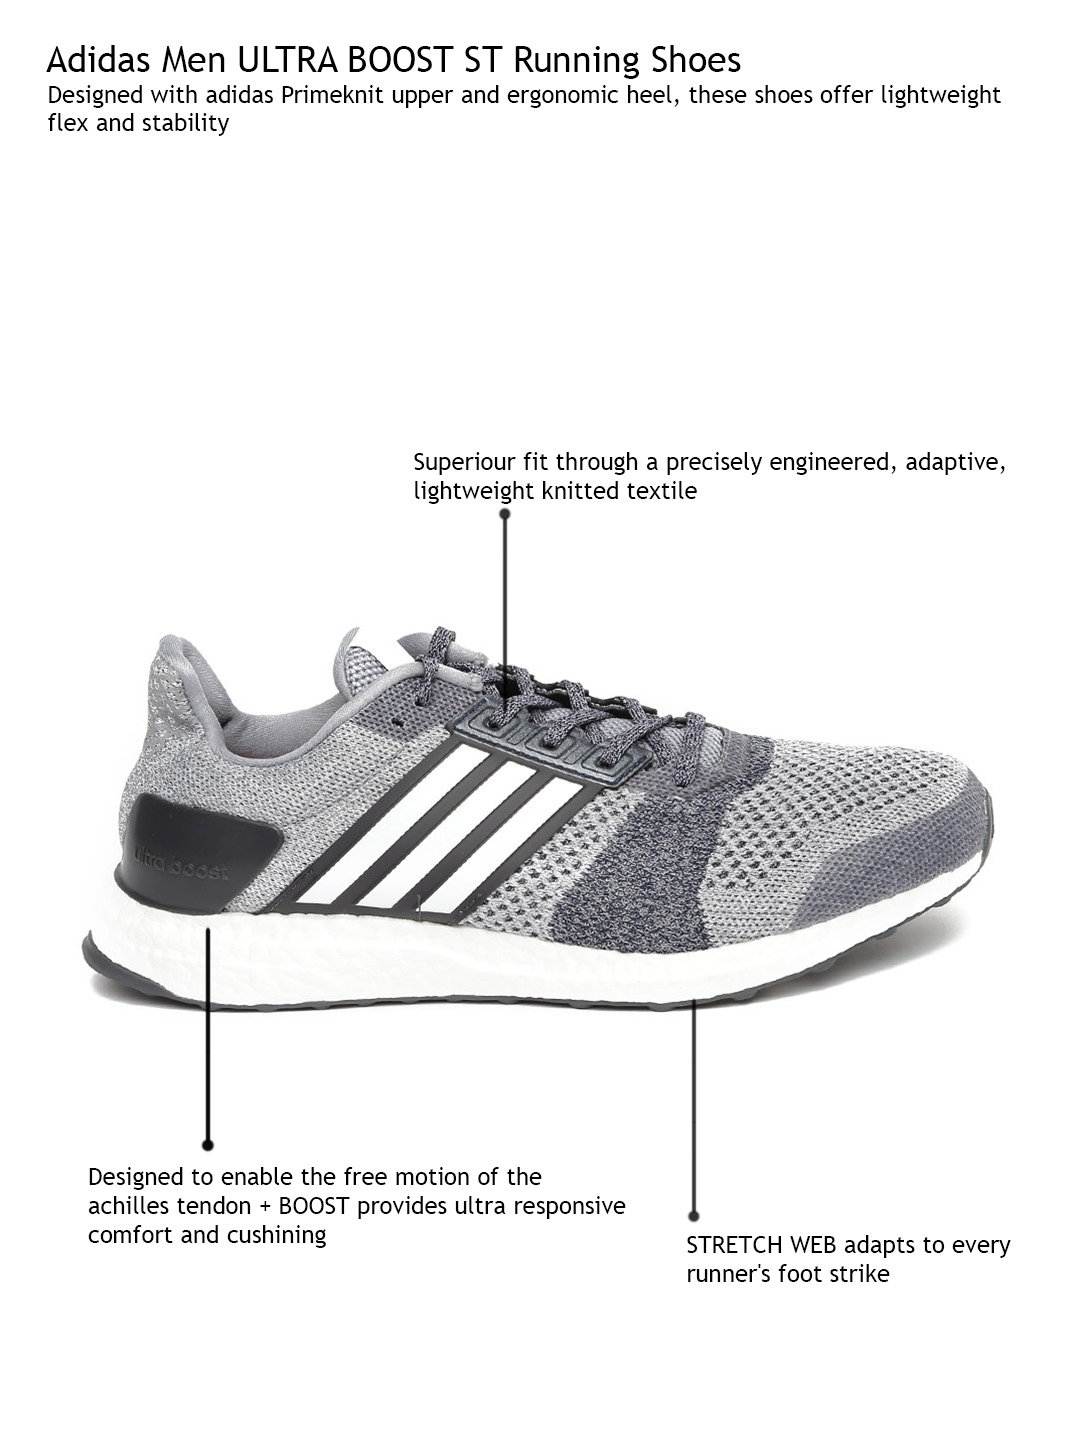 b5669979c4e0e Buy ADIDAS Men Grey Ultra Boost Running ST Shoes - Sports Shoes for Men  1731430